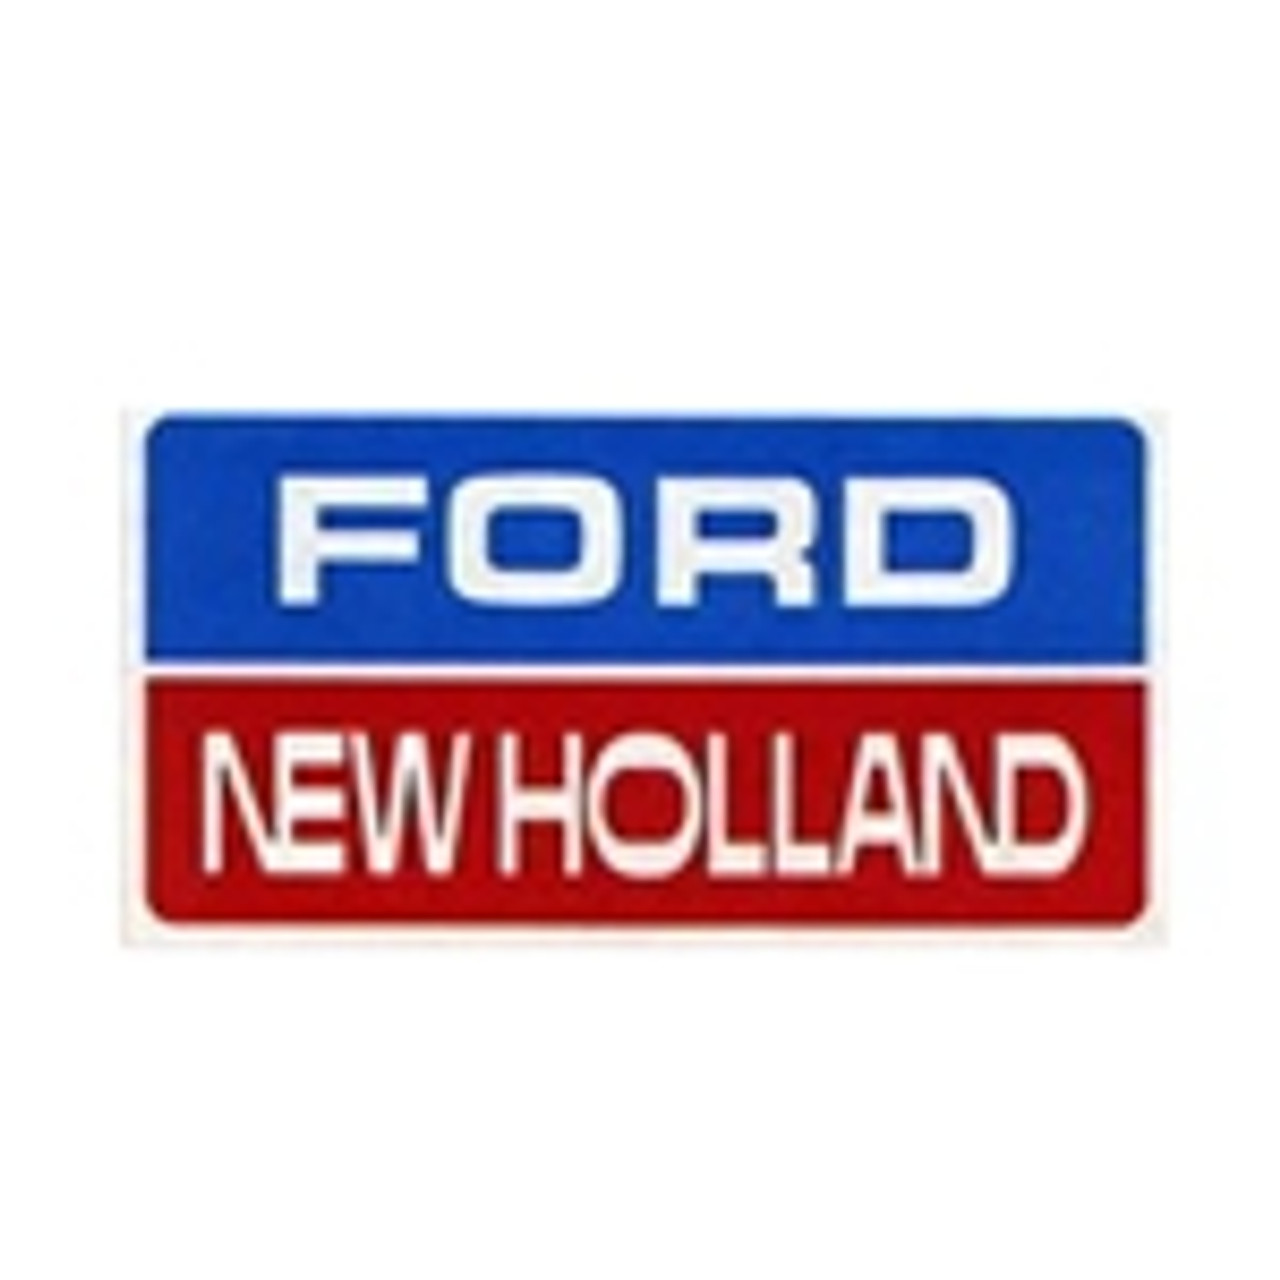 Ford-New Holland